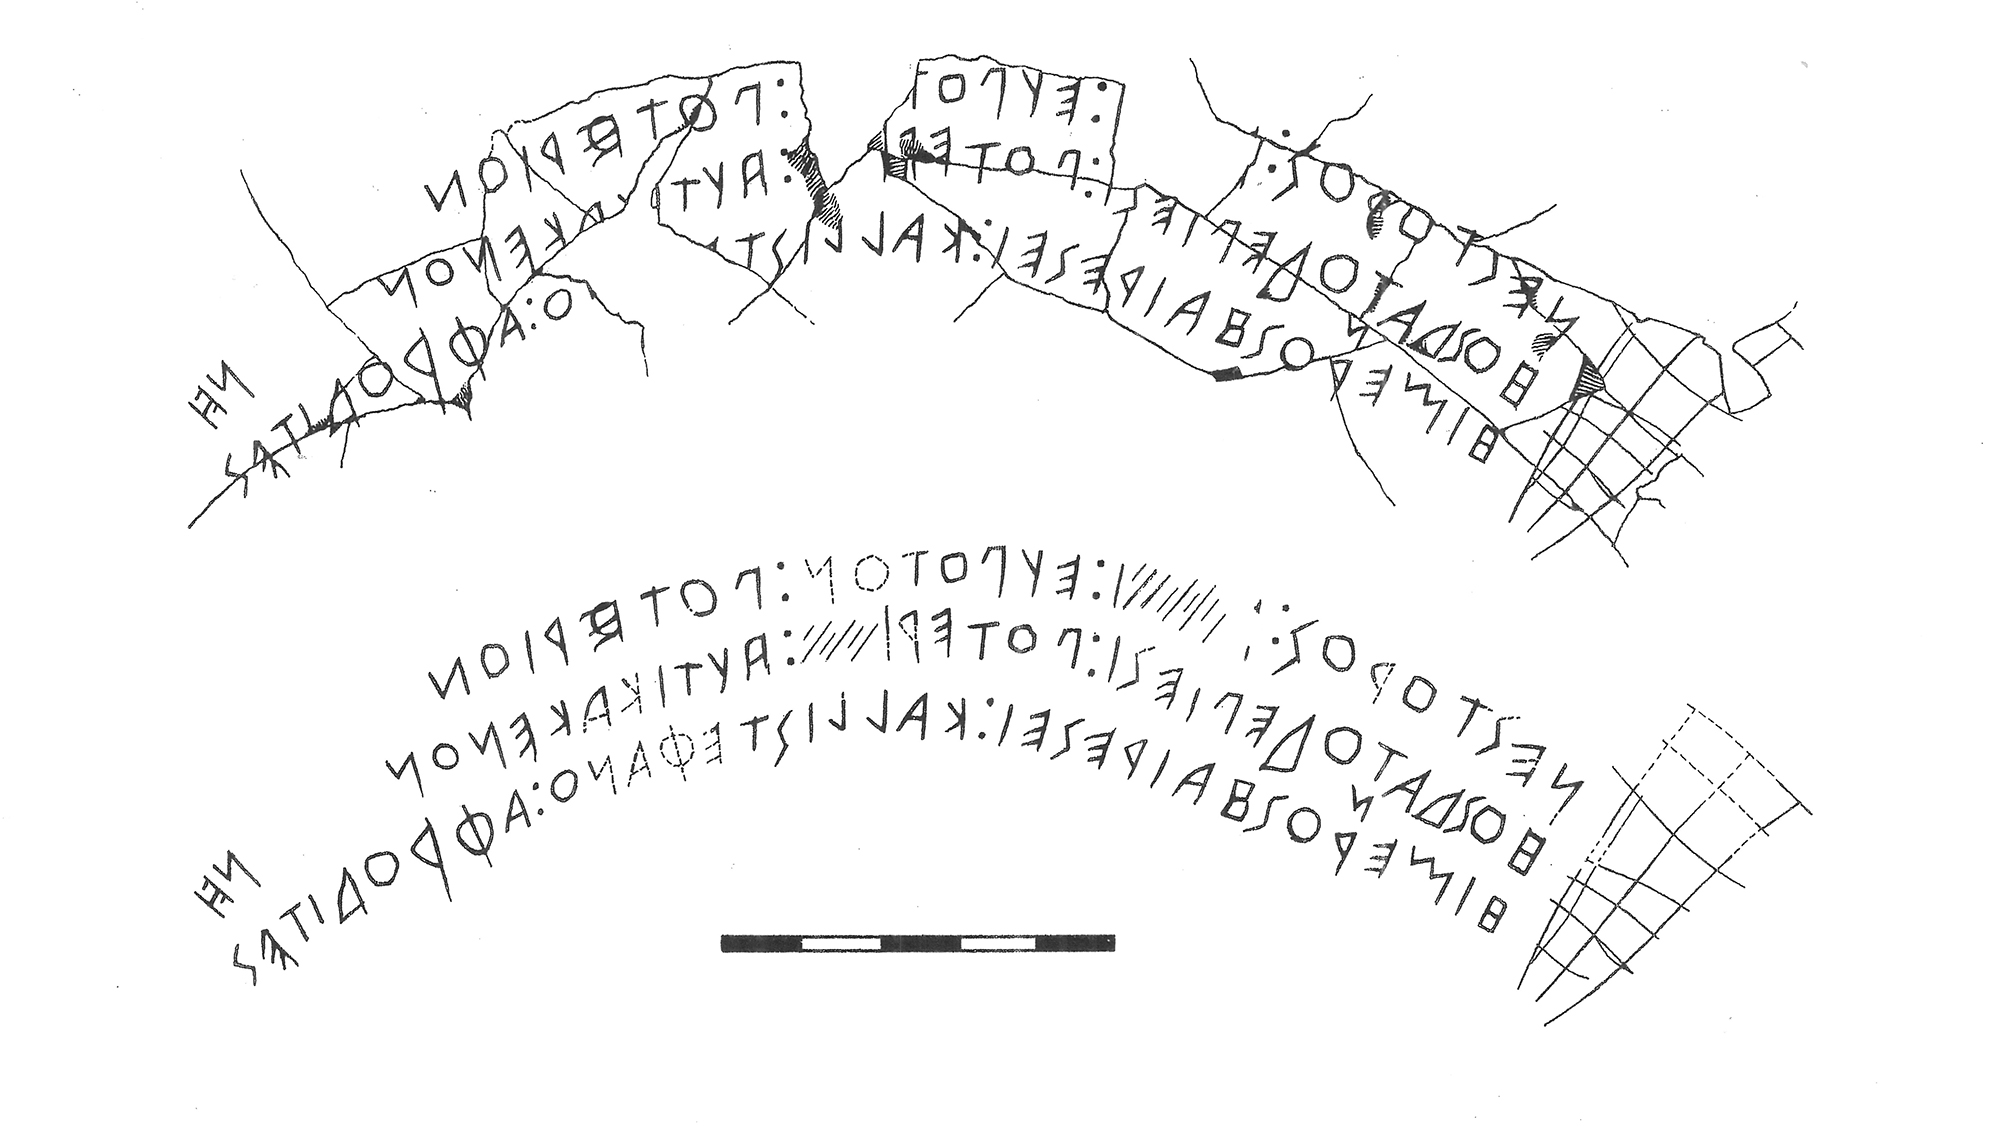 ANE TODAY - 201903 - The Greek Alphabet: Older Than You May Think? -